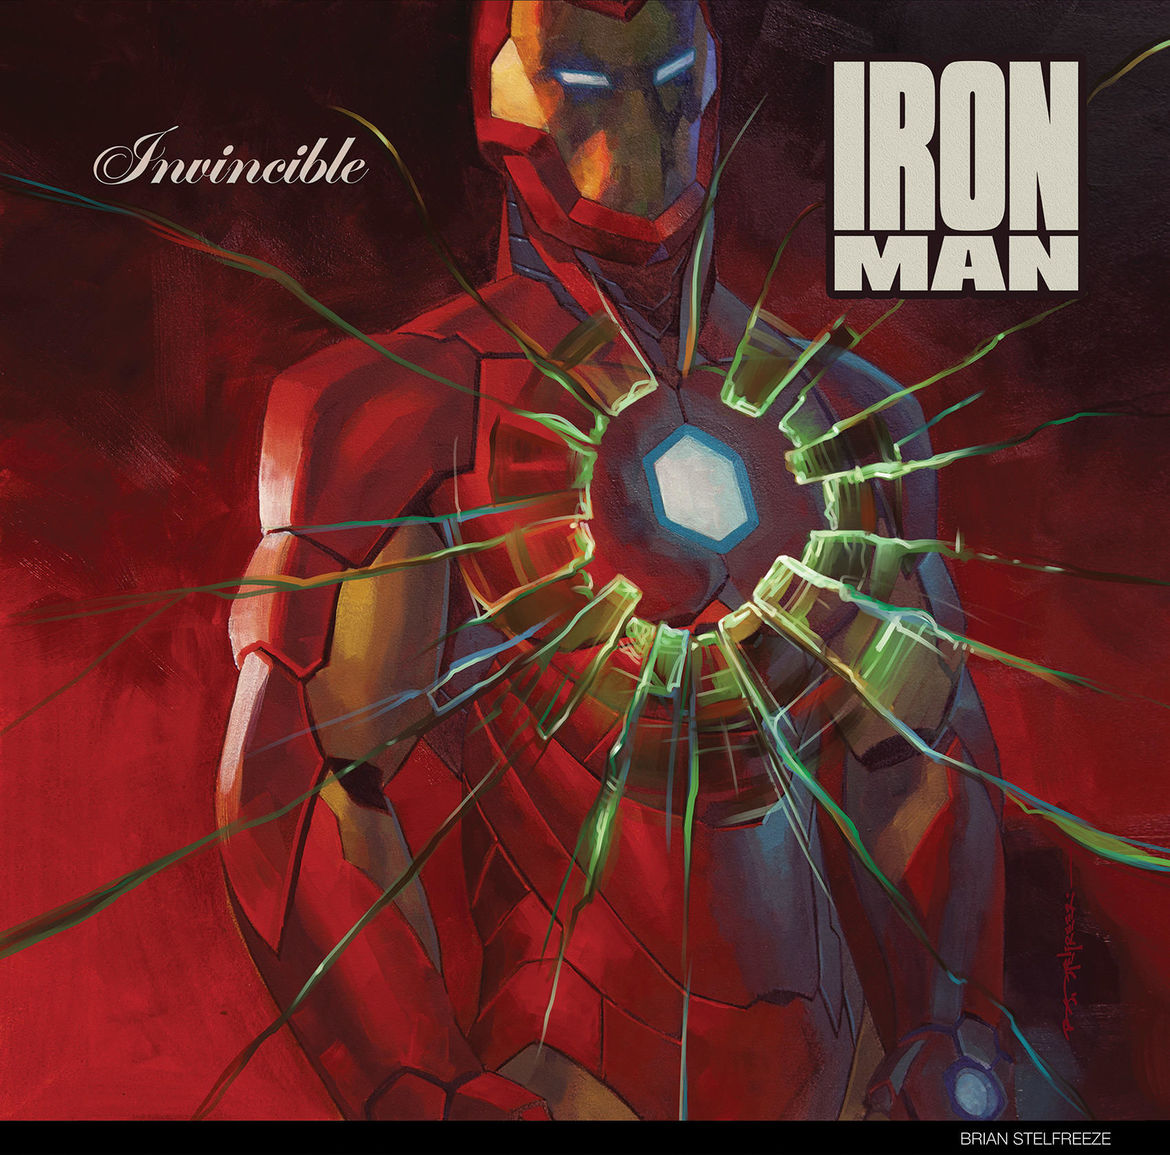 50 Cent Iron Man album cover Marvel